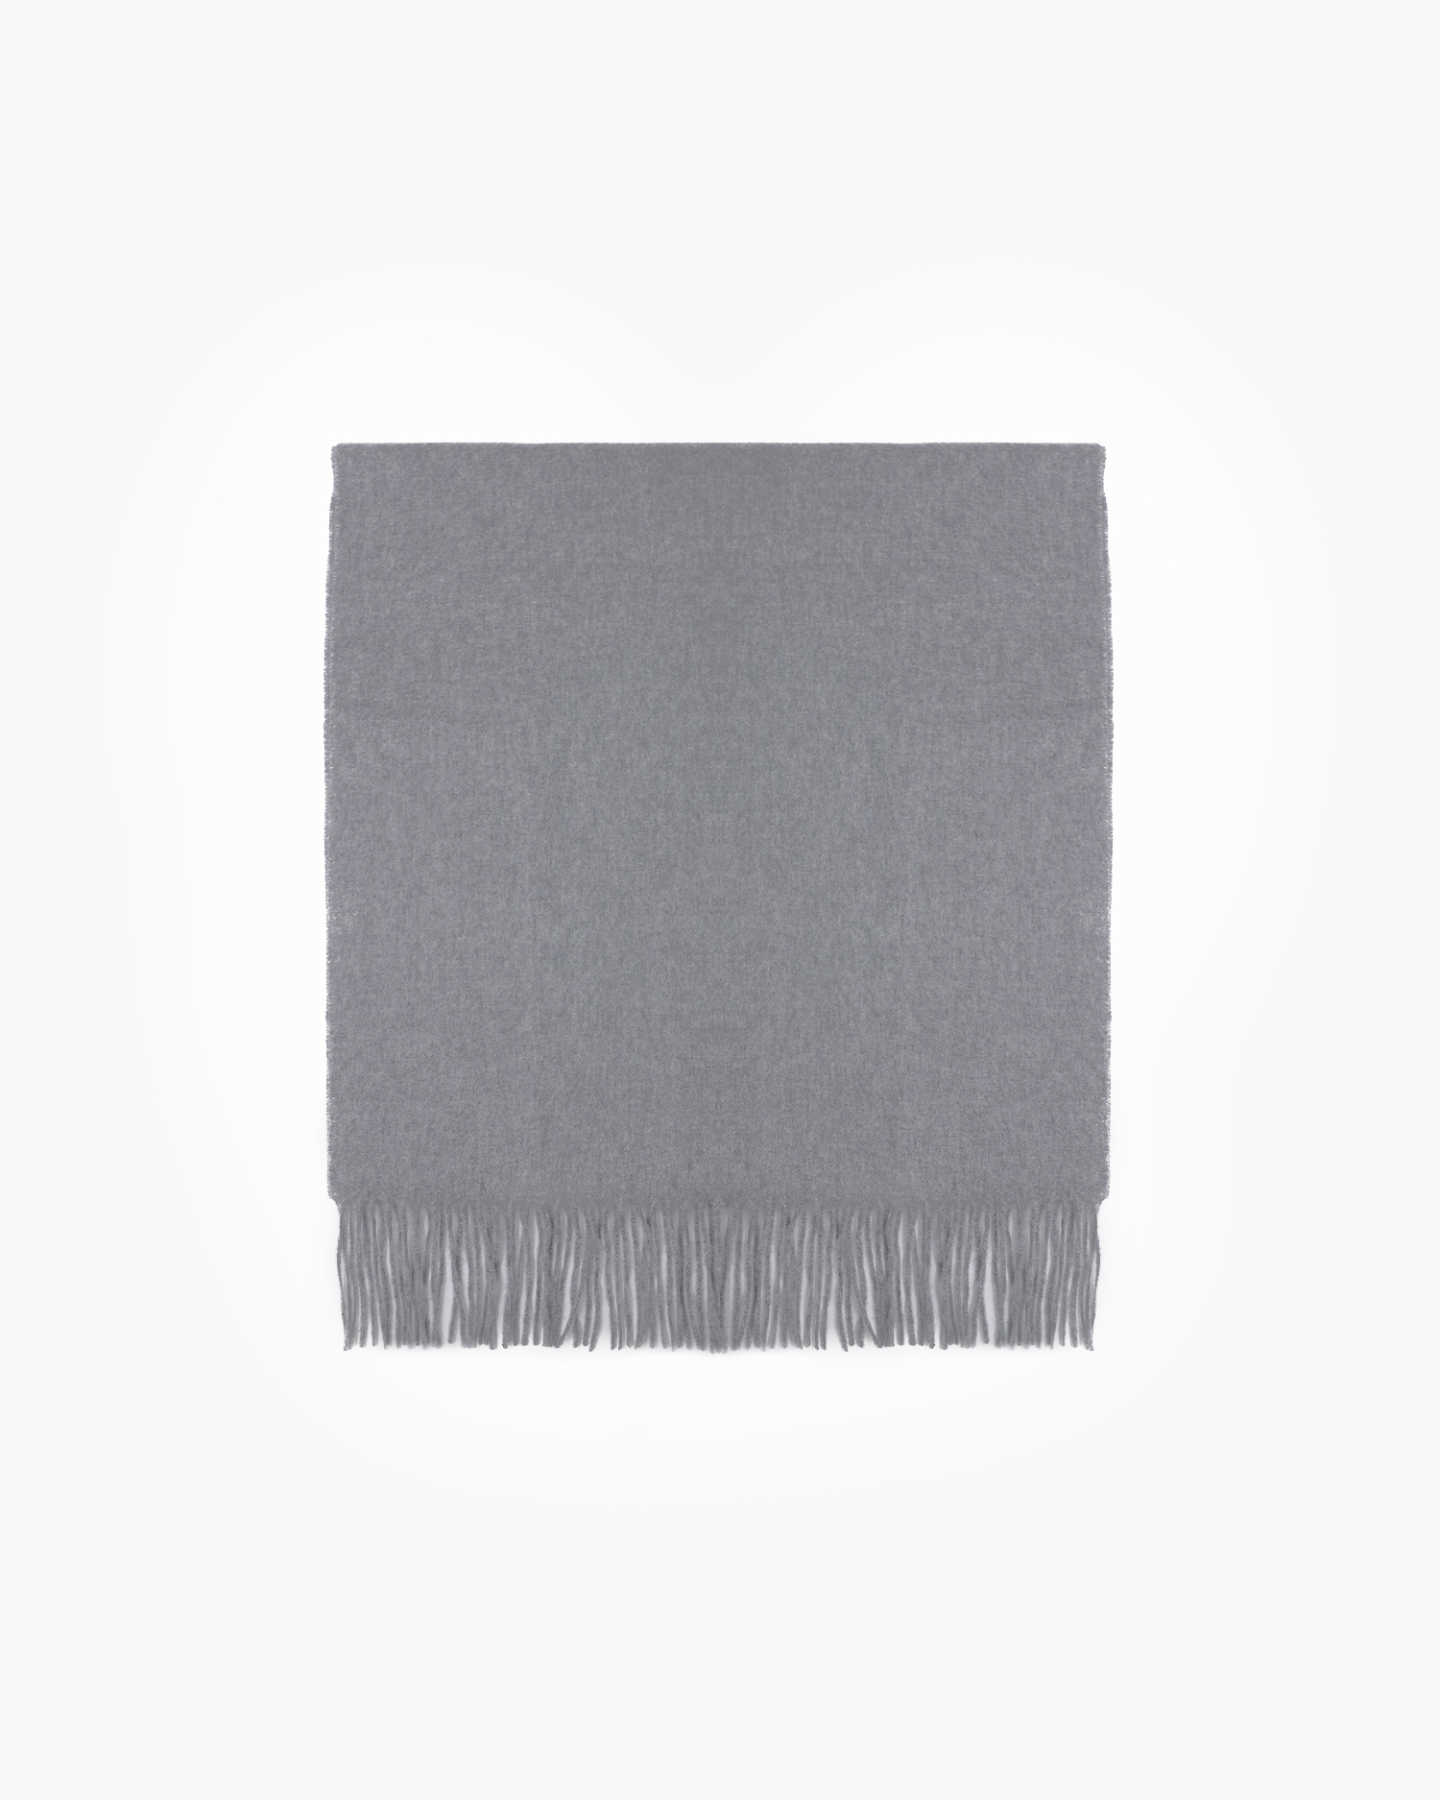 Mongolian Cashmere Throw - Heather Grey